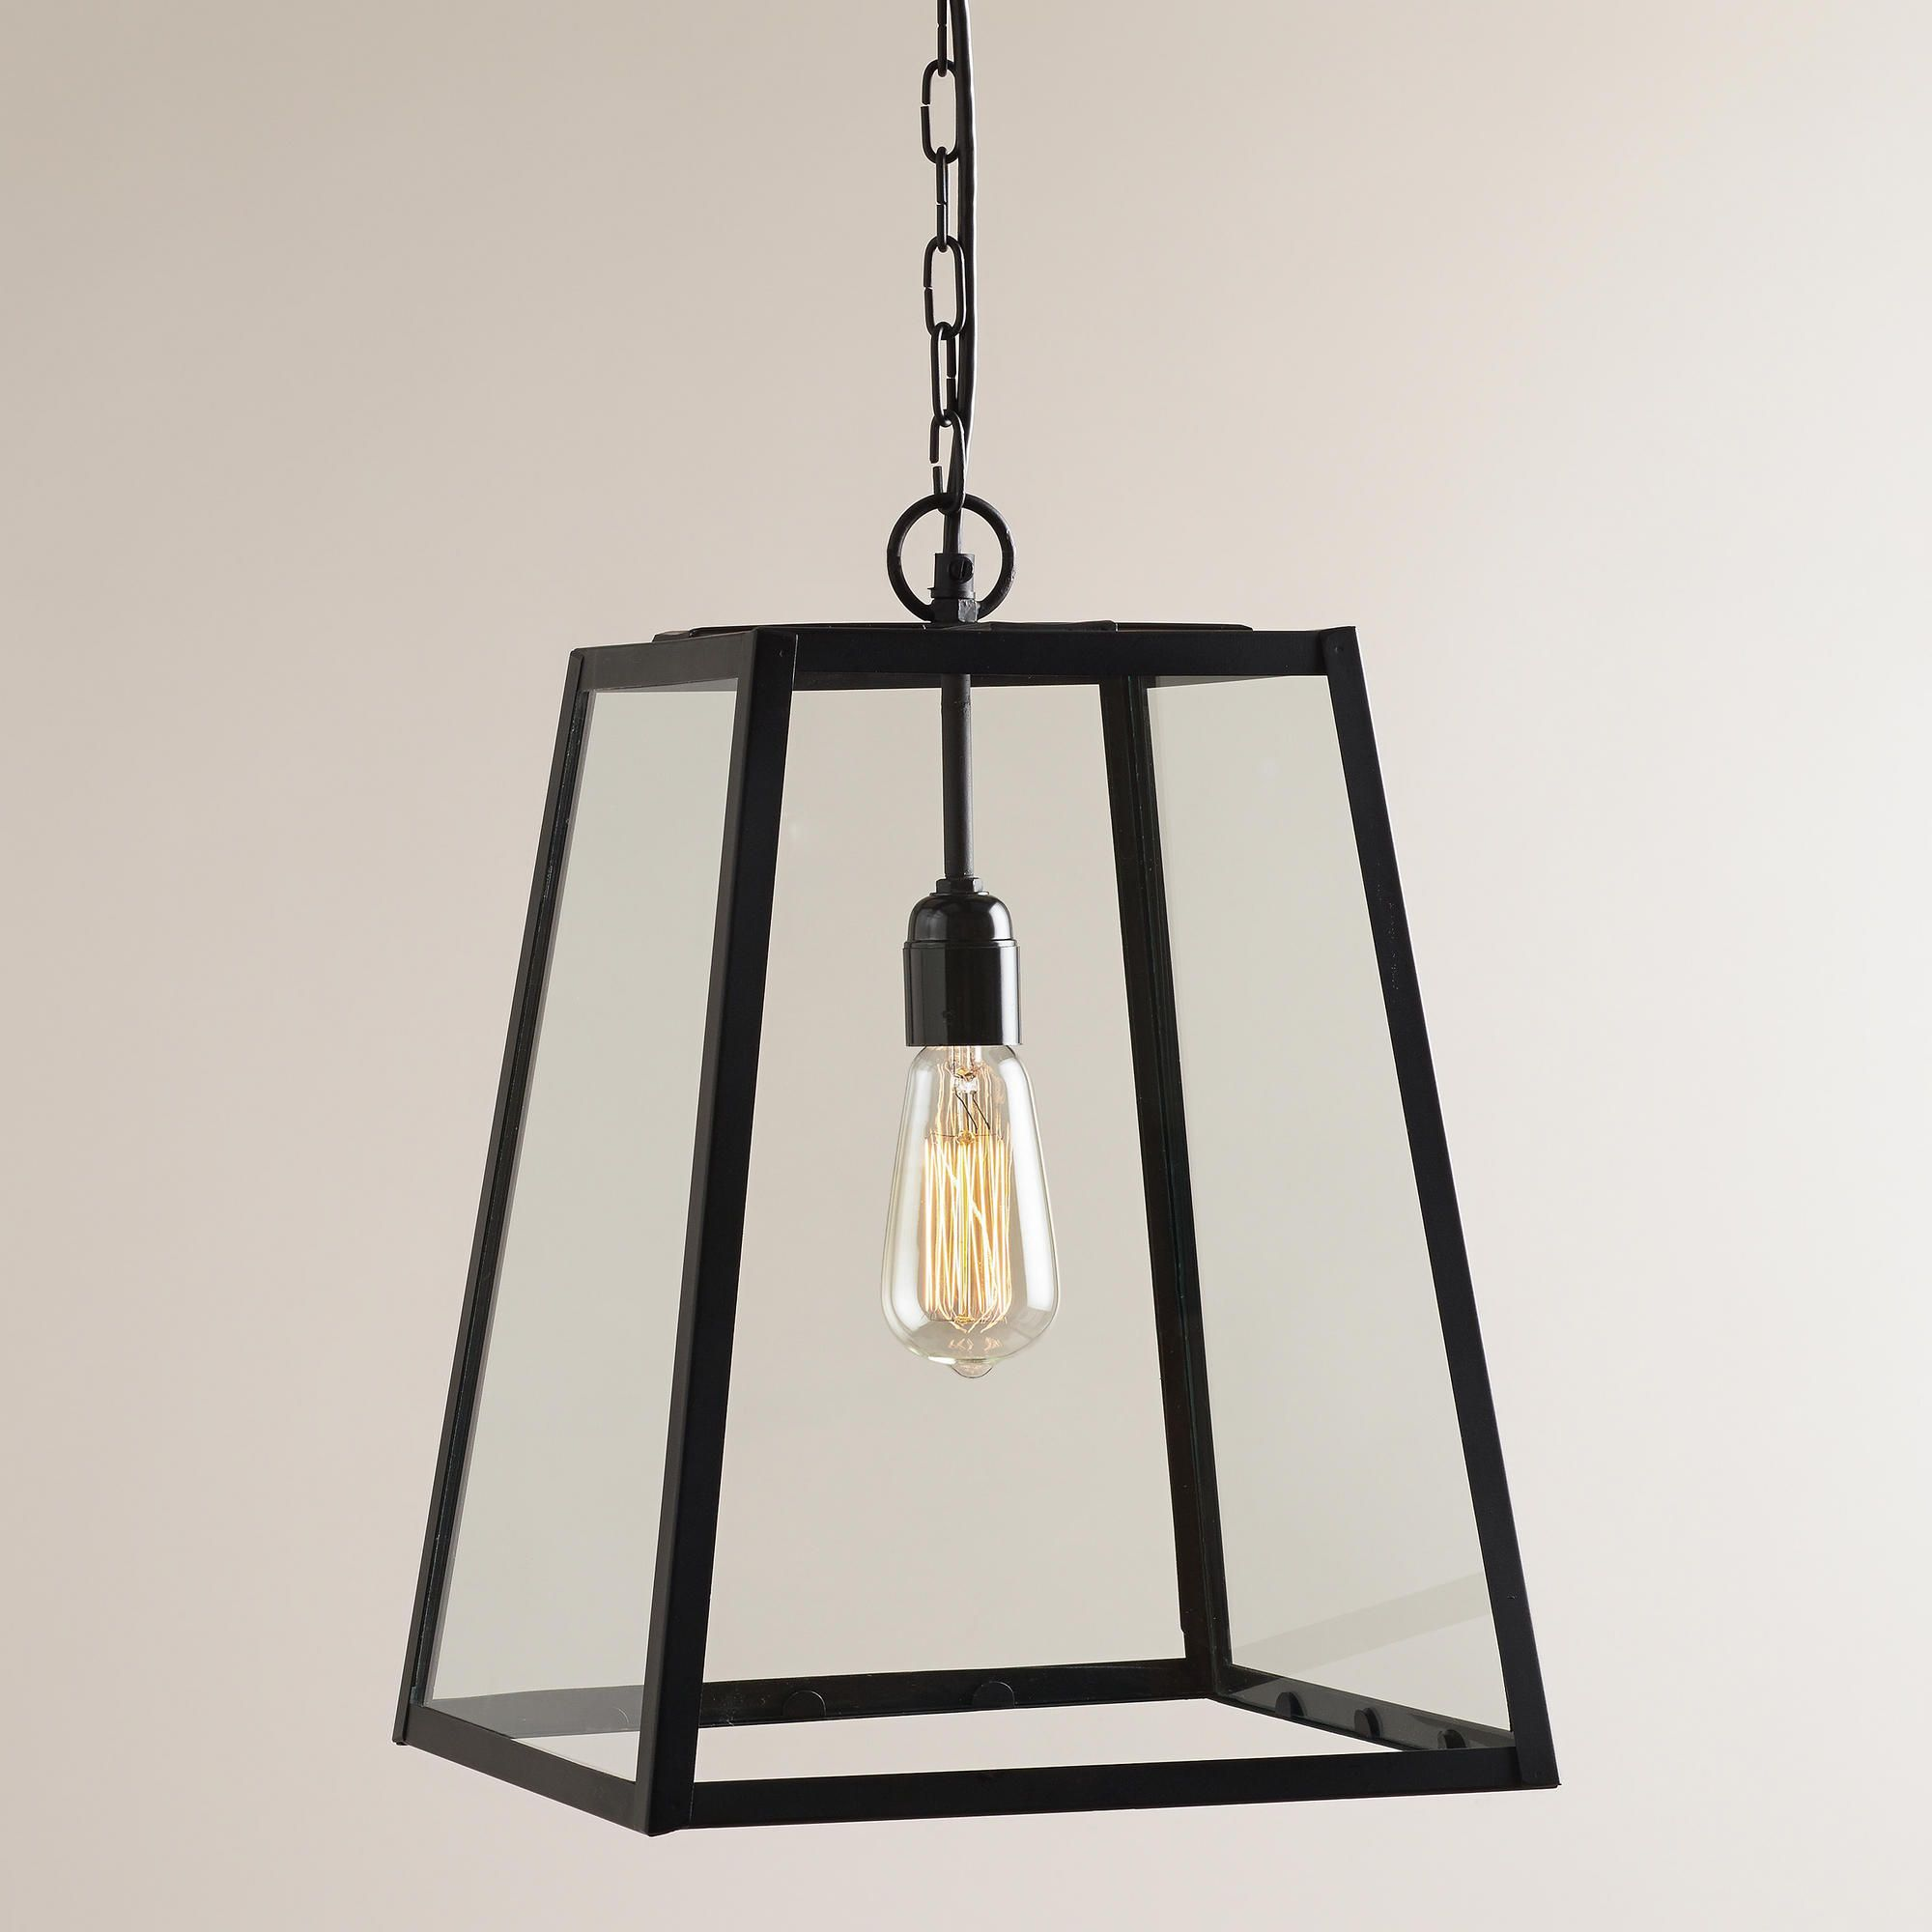 Bought $99 Four Sided Glass Hanging Pendant Lantern - World Market 1